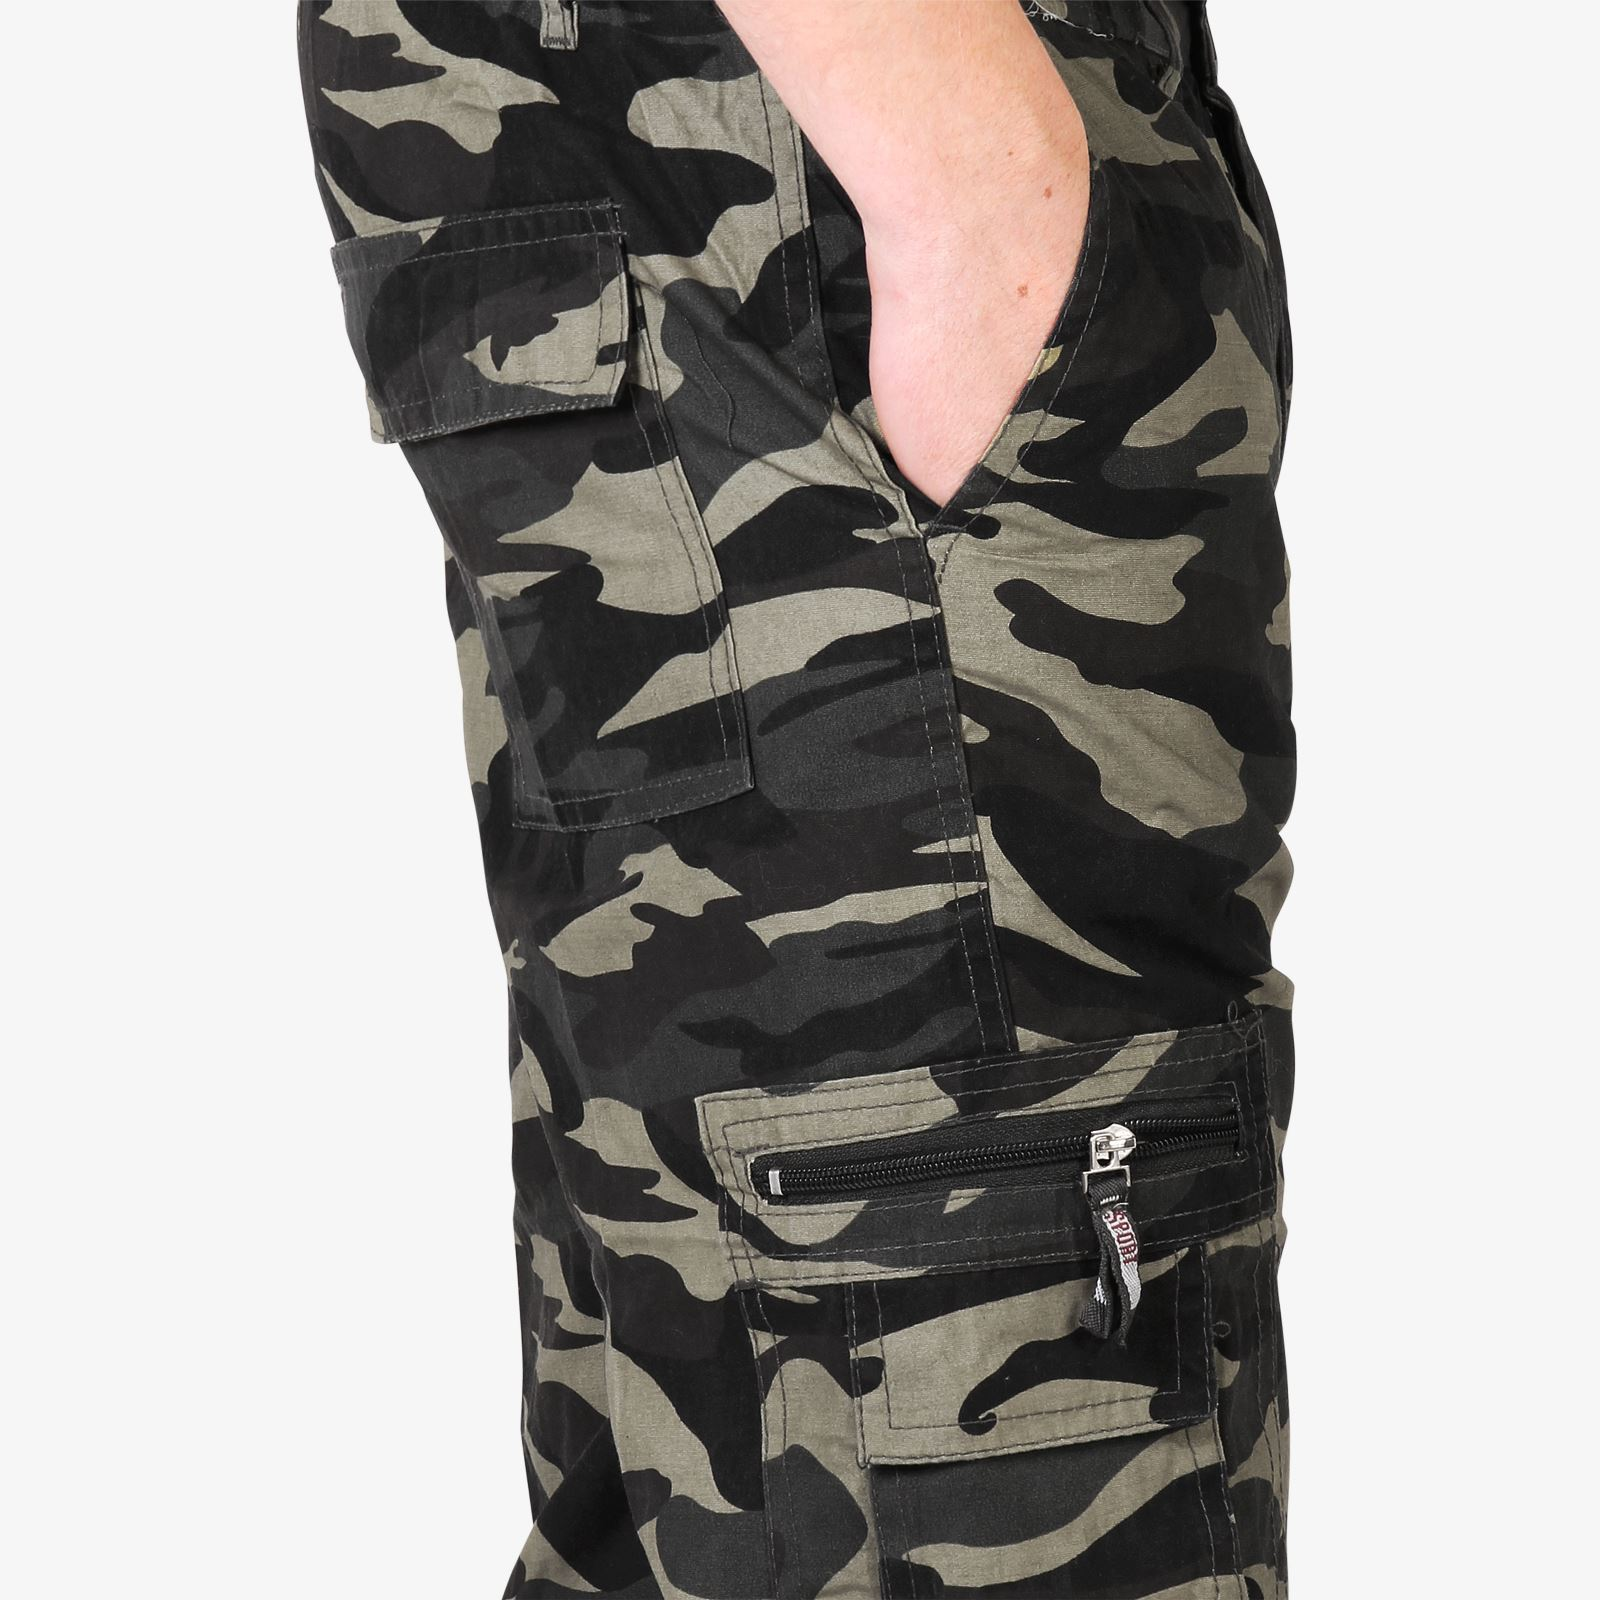 Mens-Combat-Military-Army-Camouflage-Cargo-Camo-Trousers-Pants-Casual-Work-Sizes thumbnail 3